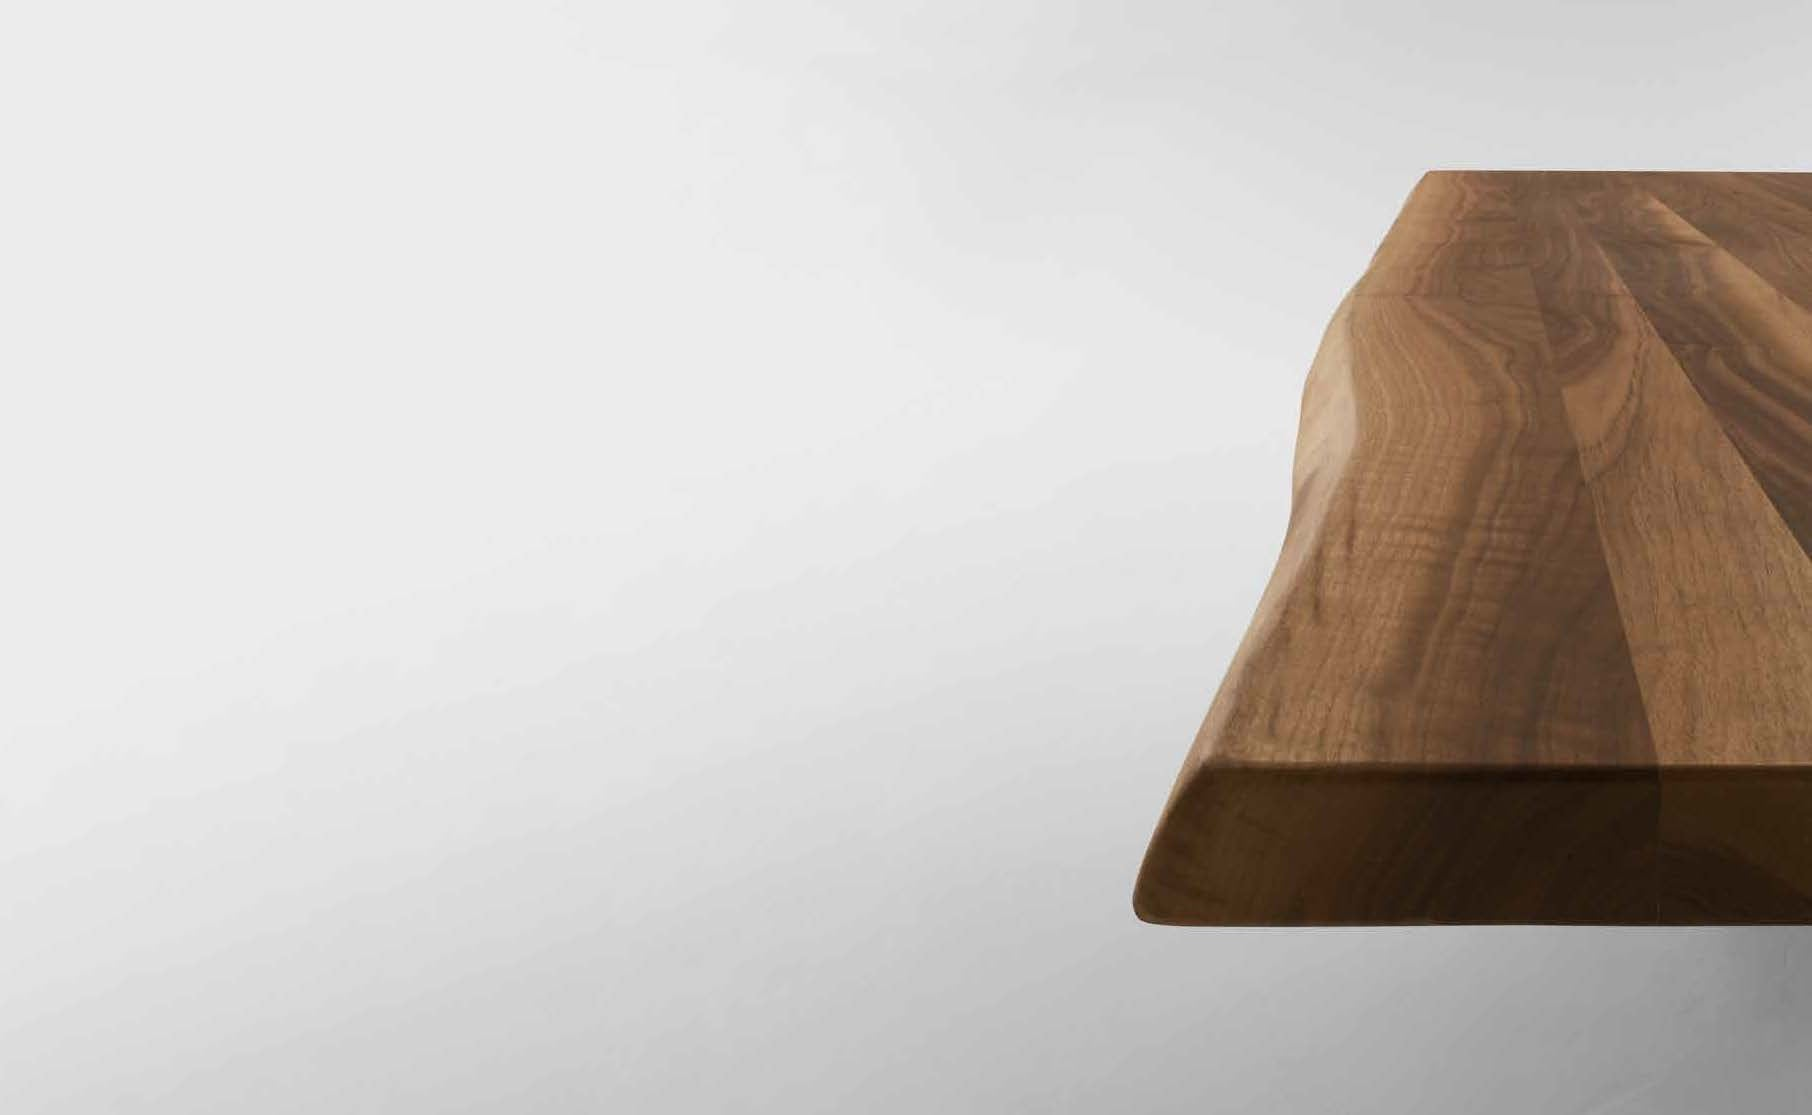 ... Tonin Casa   Italy   Tokyo Fixed Solid Walnut Table Top With Marble  Base ...